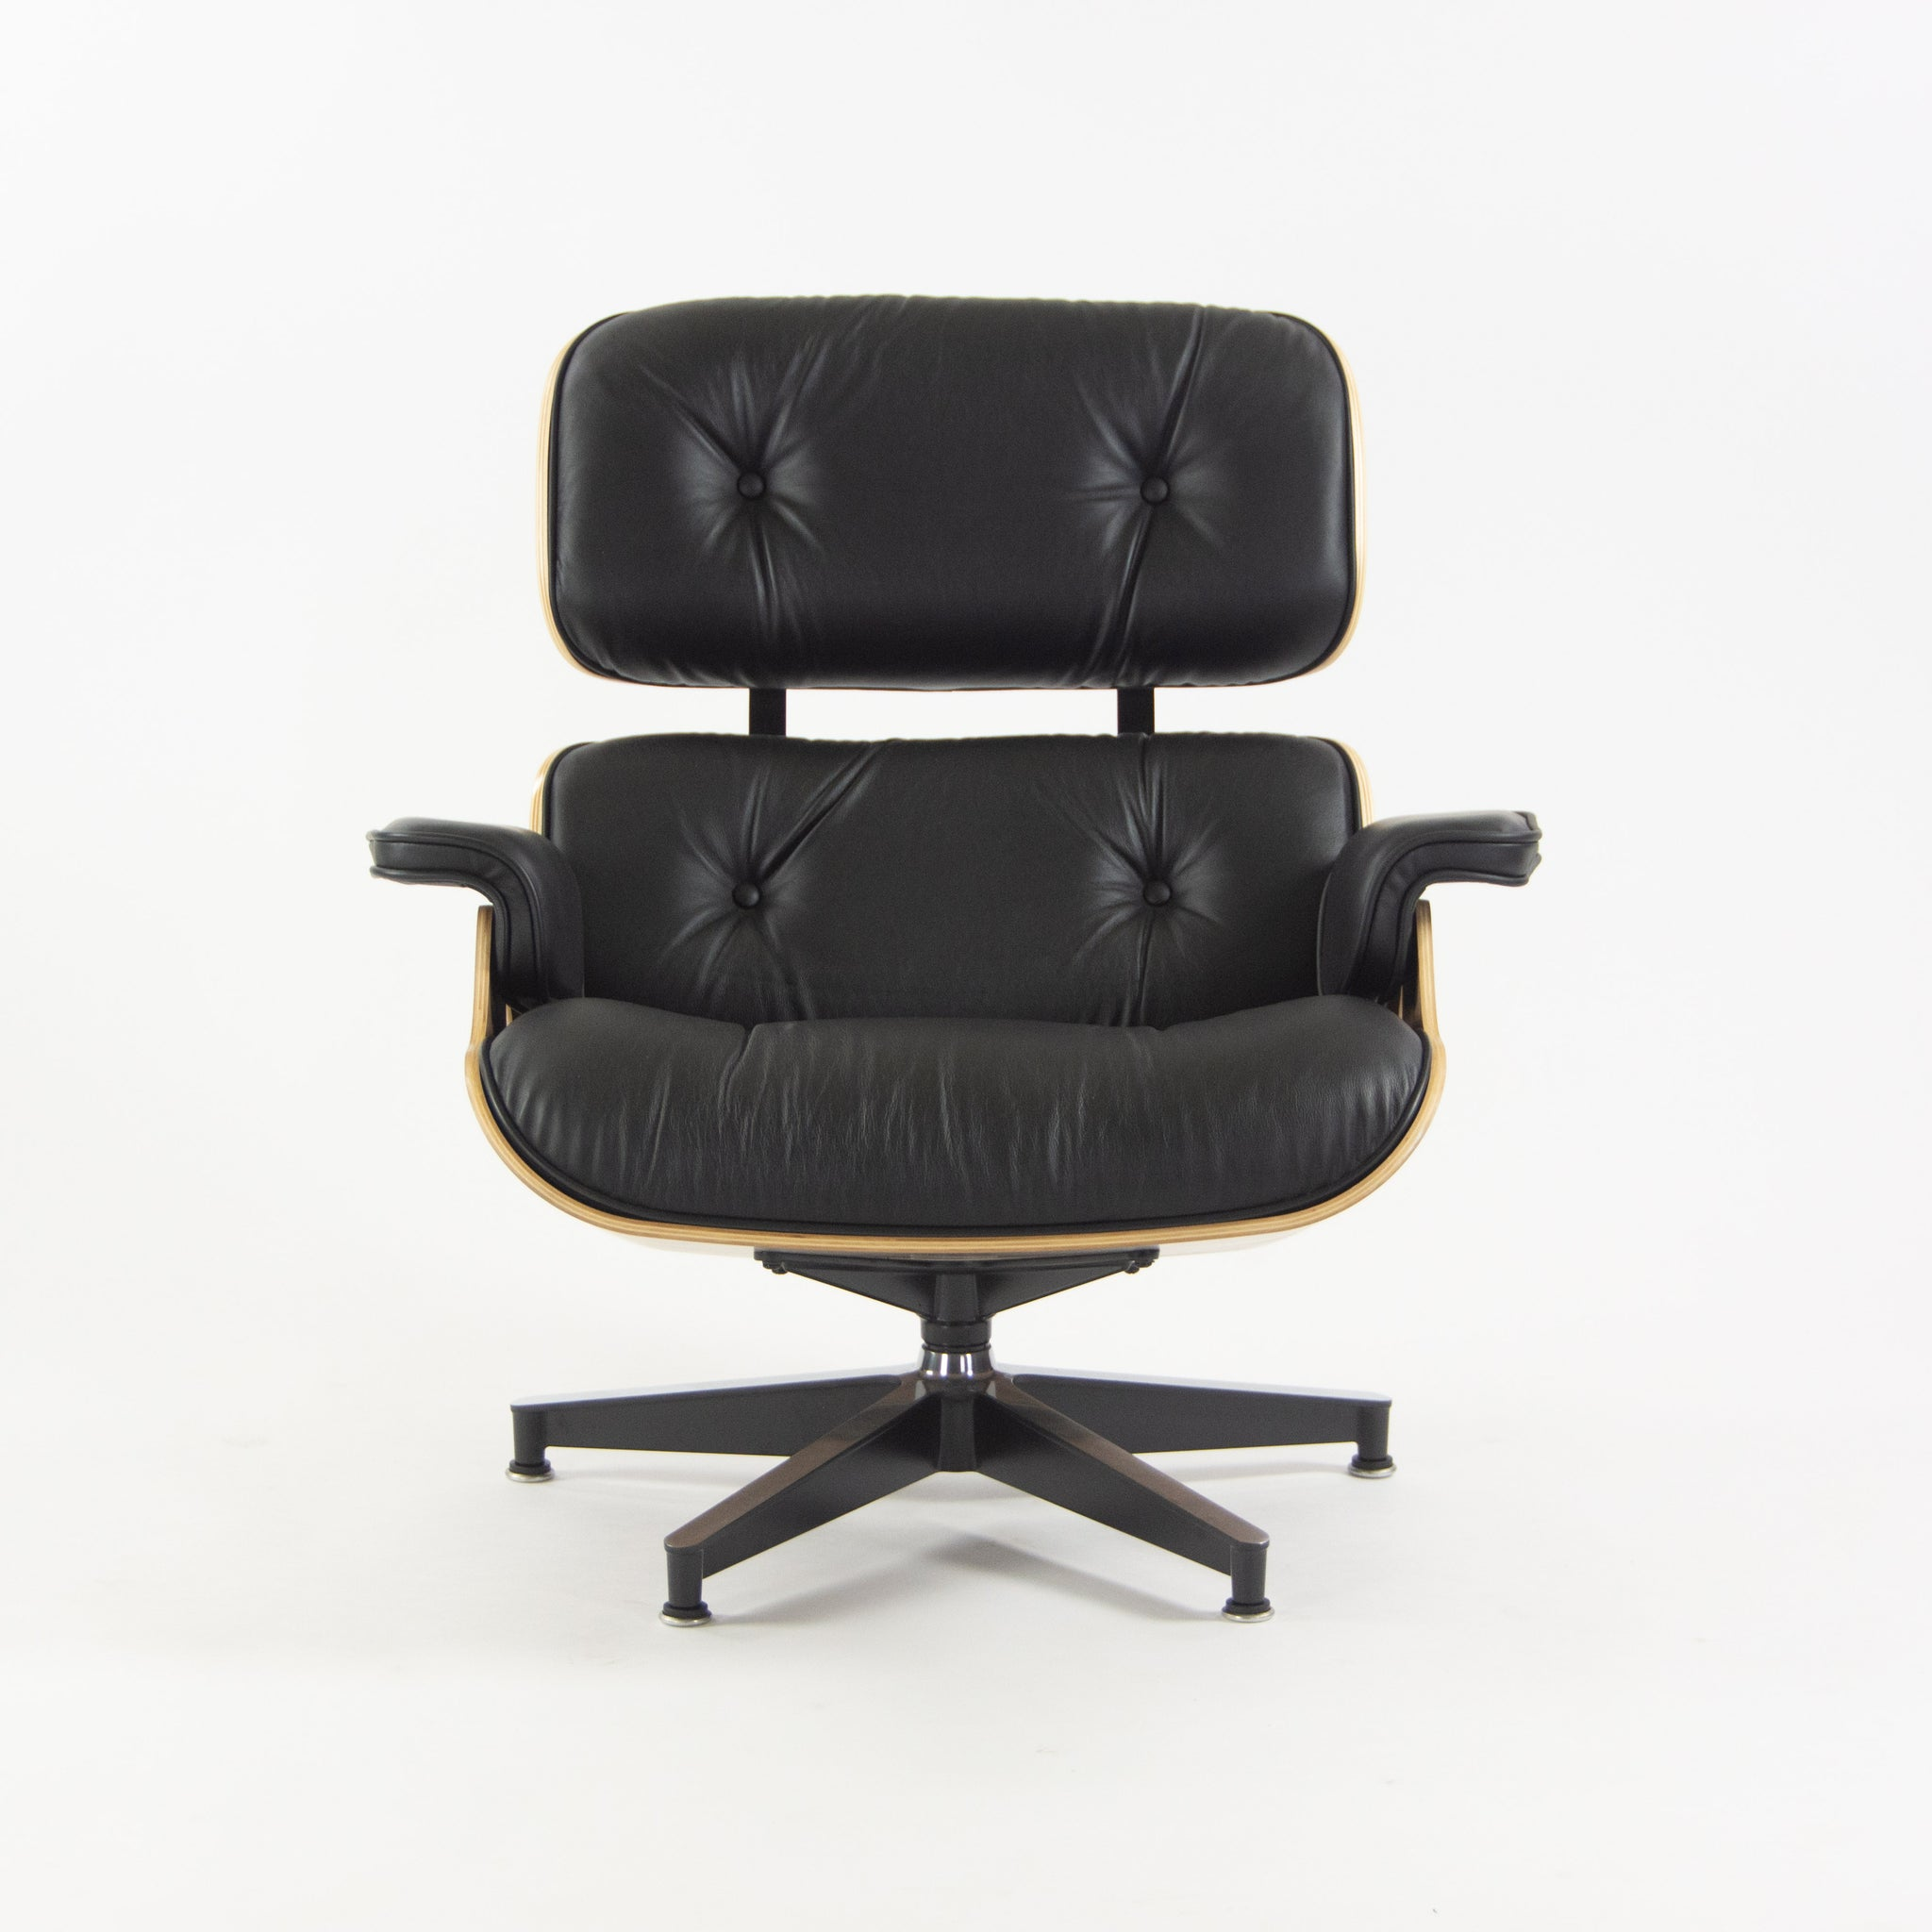 Herman Miller 2019 Brand New Eames Lounge Chair and Ottoman Walnut Black Leather